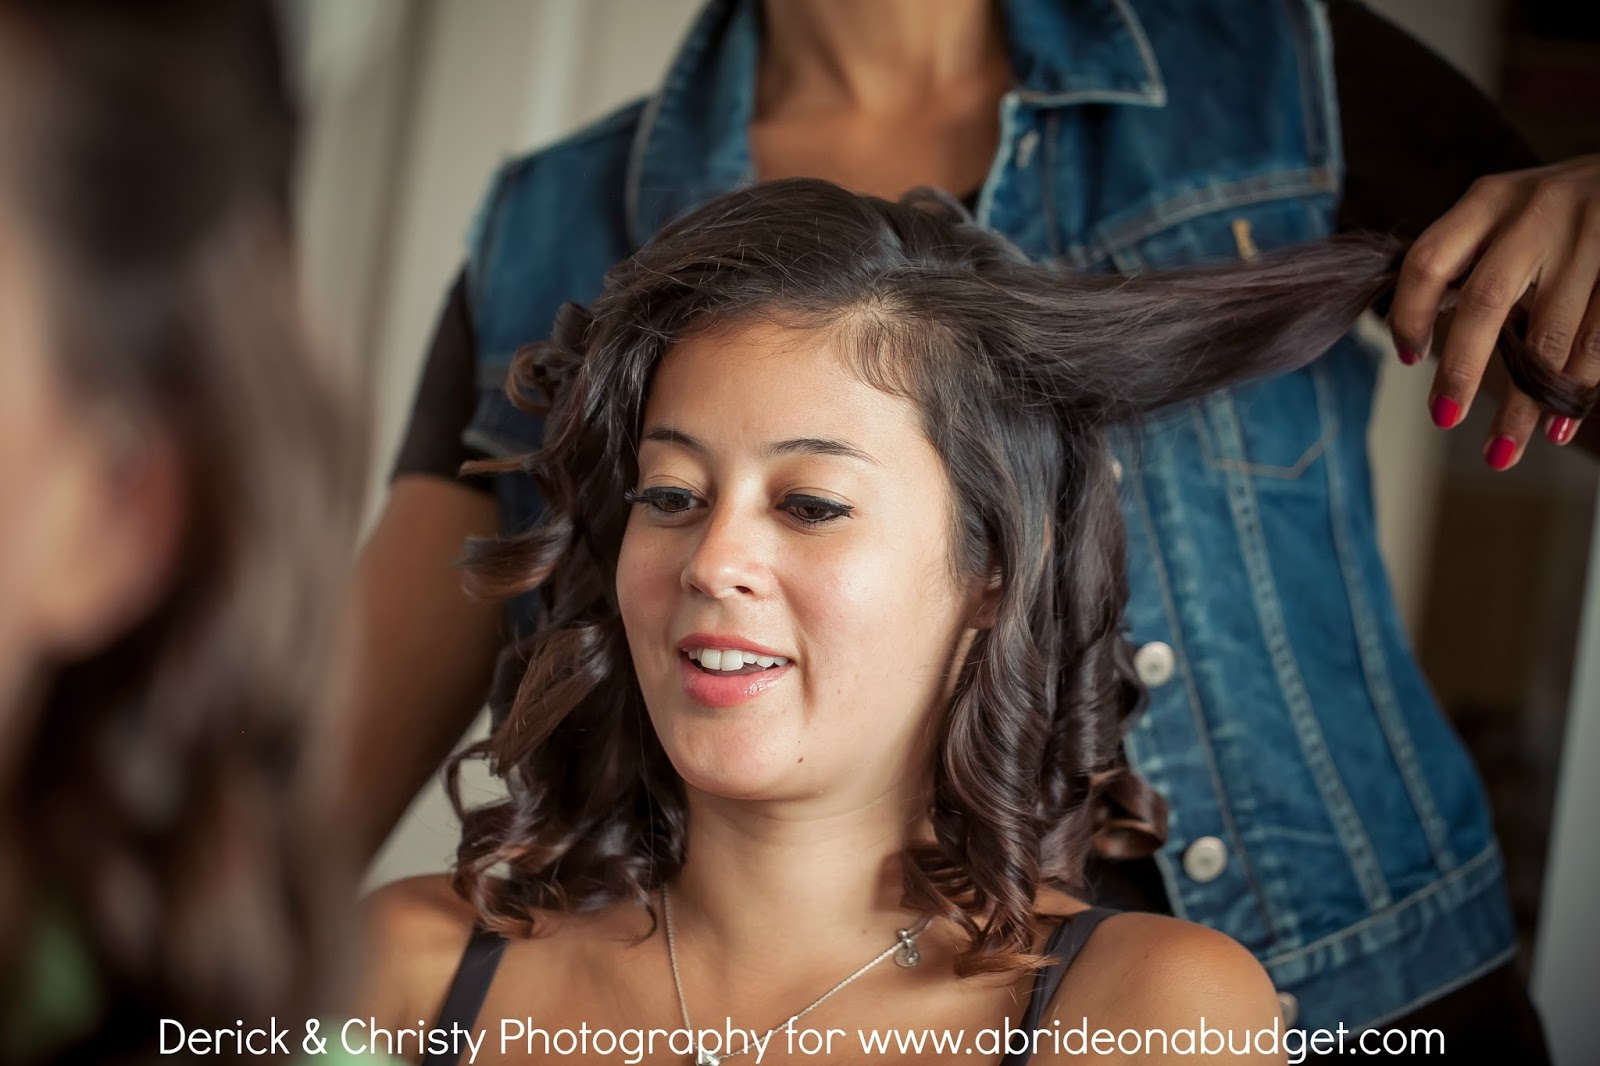 Before you get your wedding hair done, be sure to check out these five tips about getting your wedding hair done from www.abrideonabudget.com.